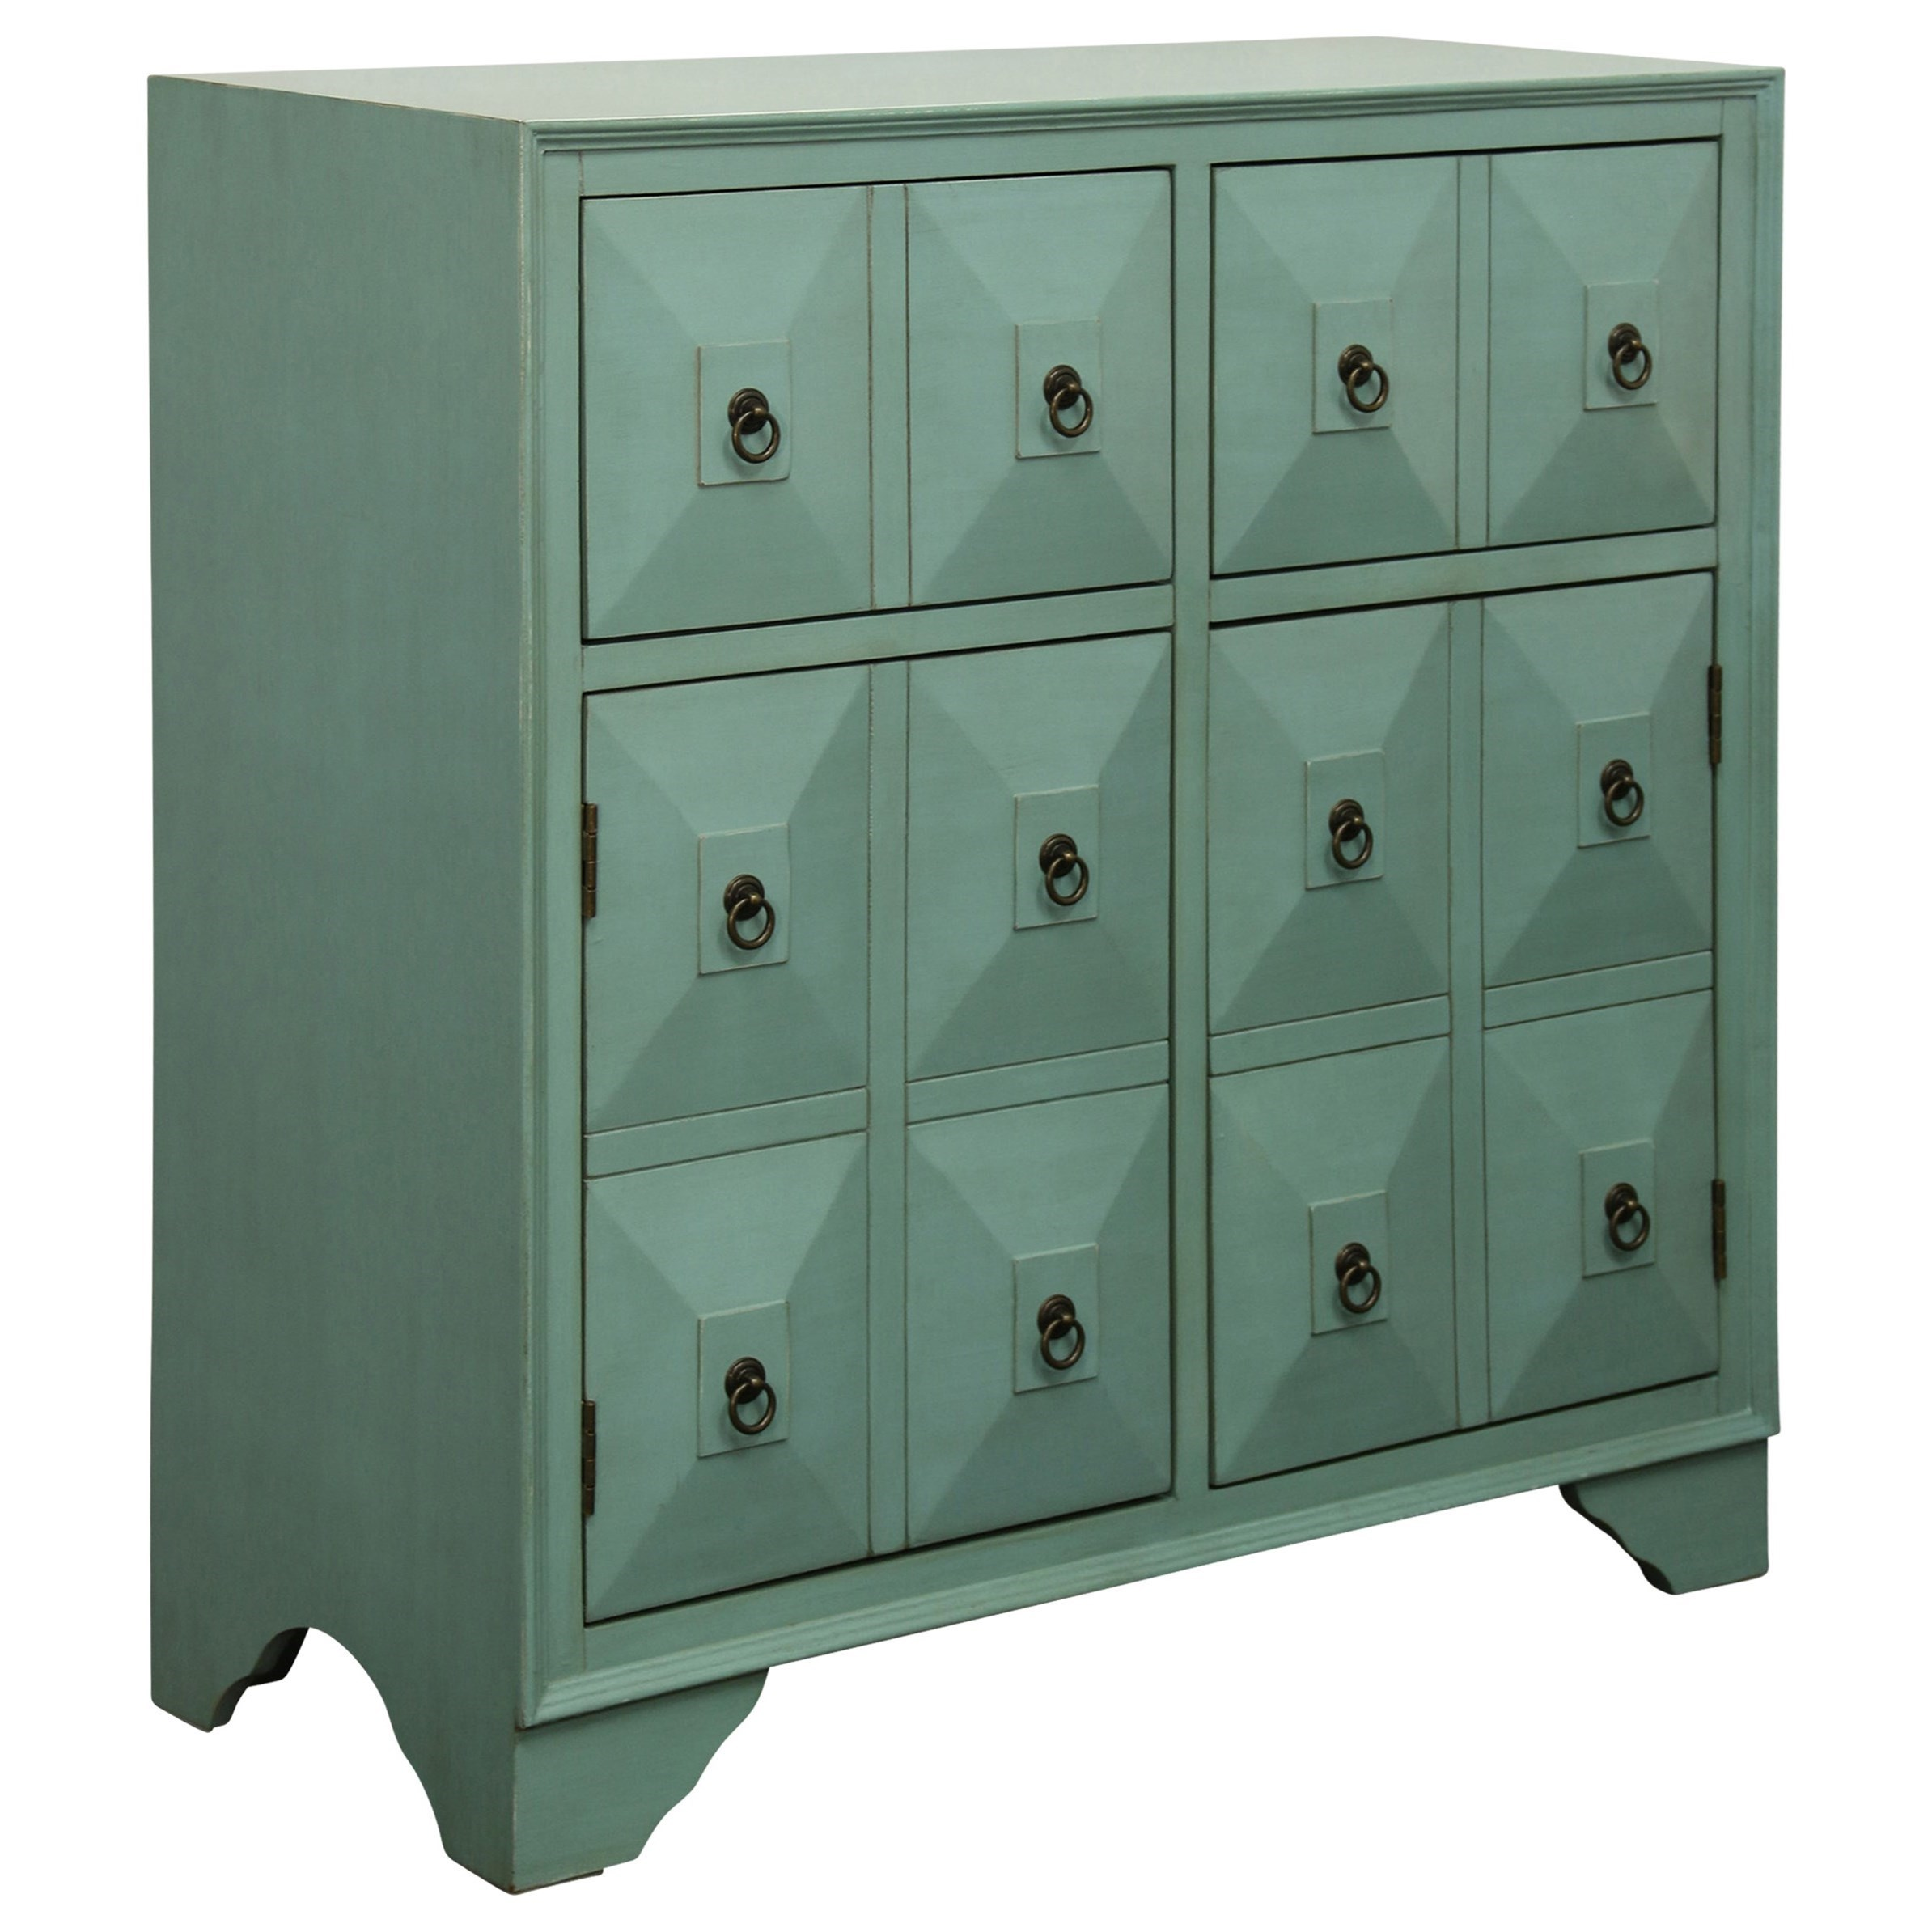 Occasional Cabinets 2 Drawer 2 Door Chest by StyleCraft at Wilcox Furniture